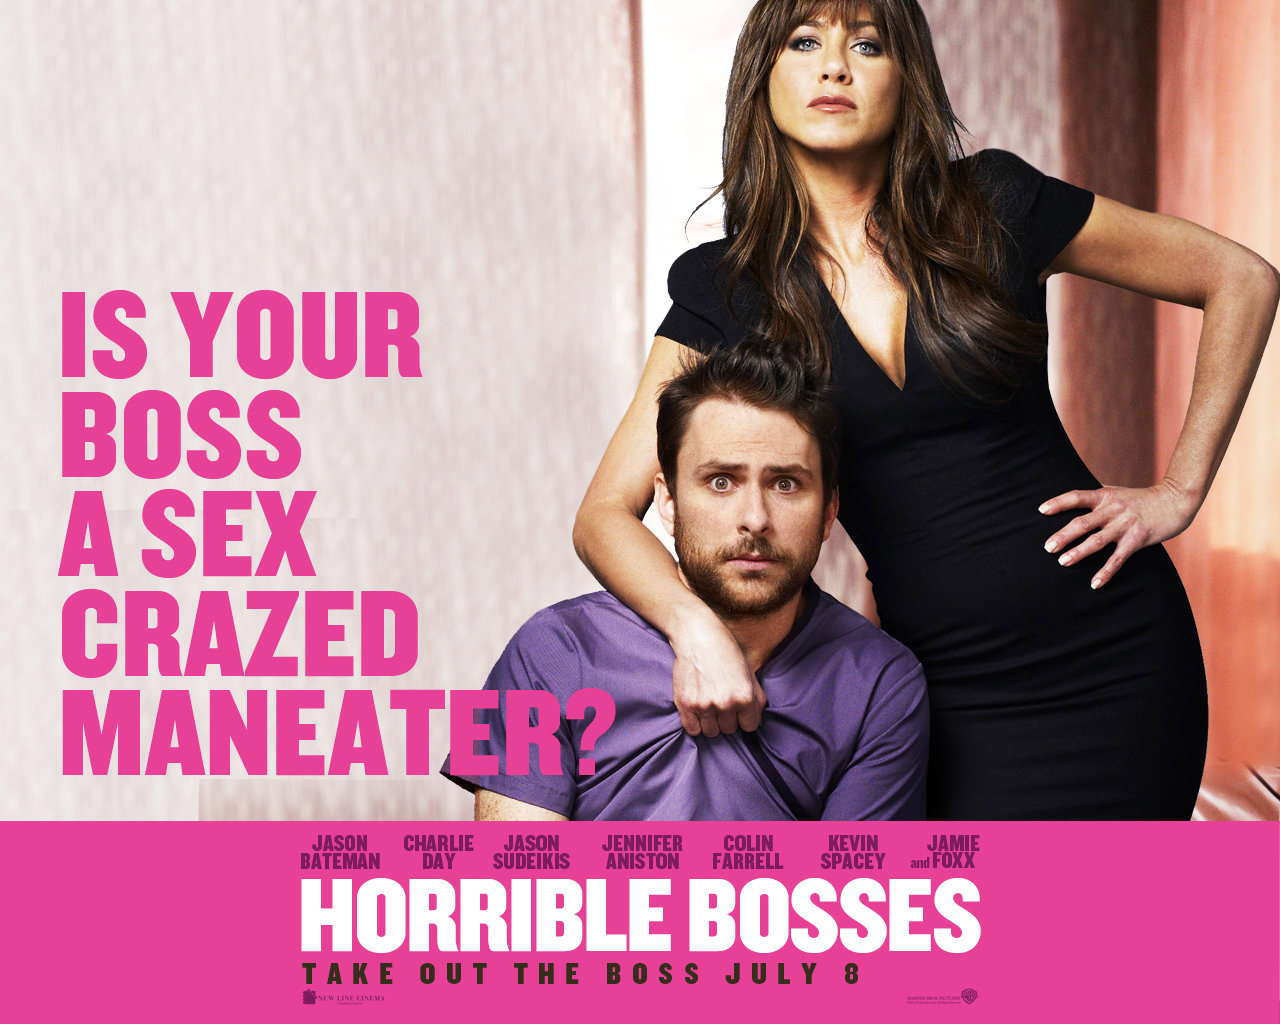 http://4.bp.blogspot.com/-JcRk4K-TGd8/Th0sGSkLJDI/AAAAAAAAAac/NNLag2XIX2I/s1600/Horrible-Bosses.jpg